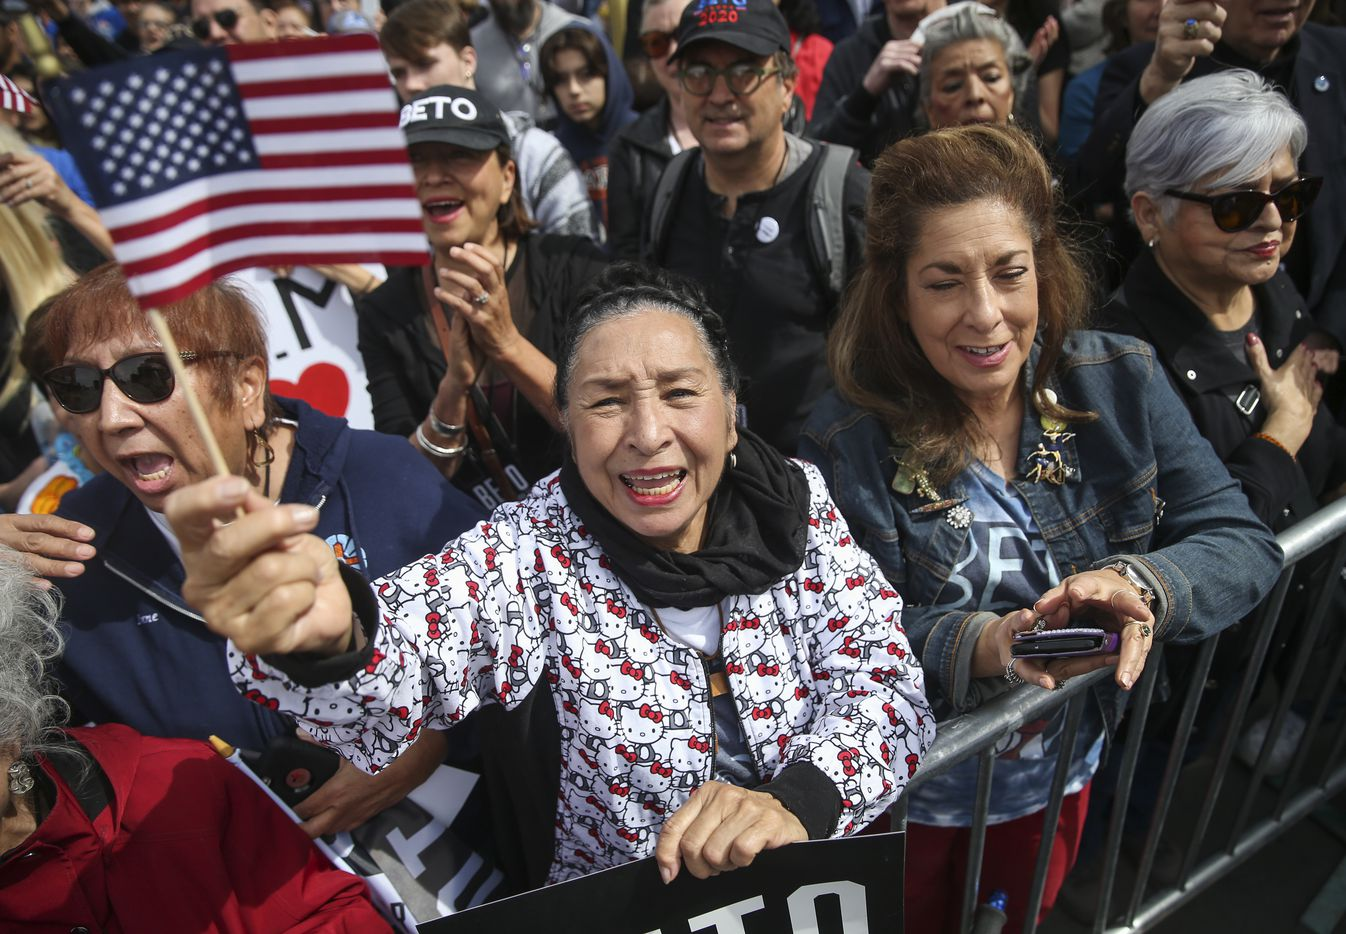 Rosa Guerrero (center) of El Paso sings along with the national anthem at a Beto O'Rourke presidential campaign kickoff rally in downtown El Paso on Saturday, March 30, 2019.